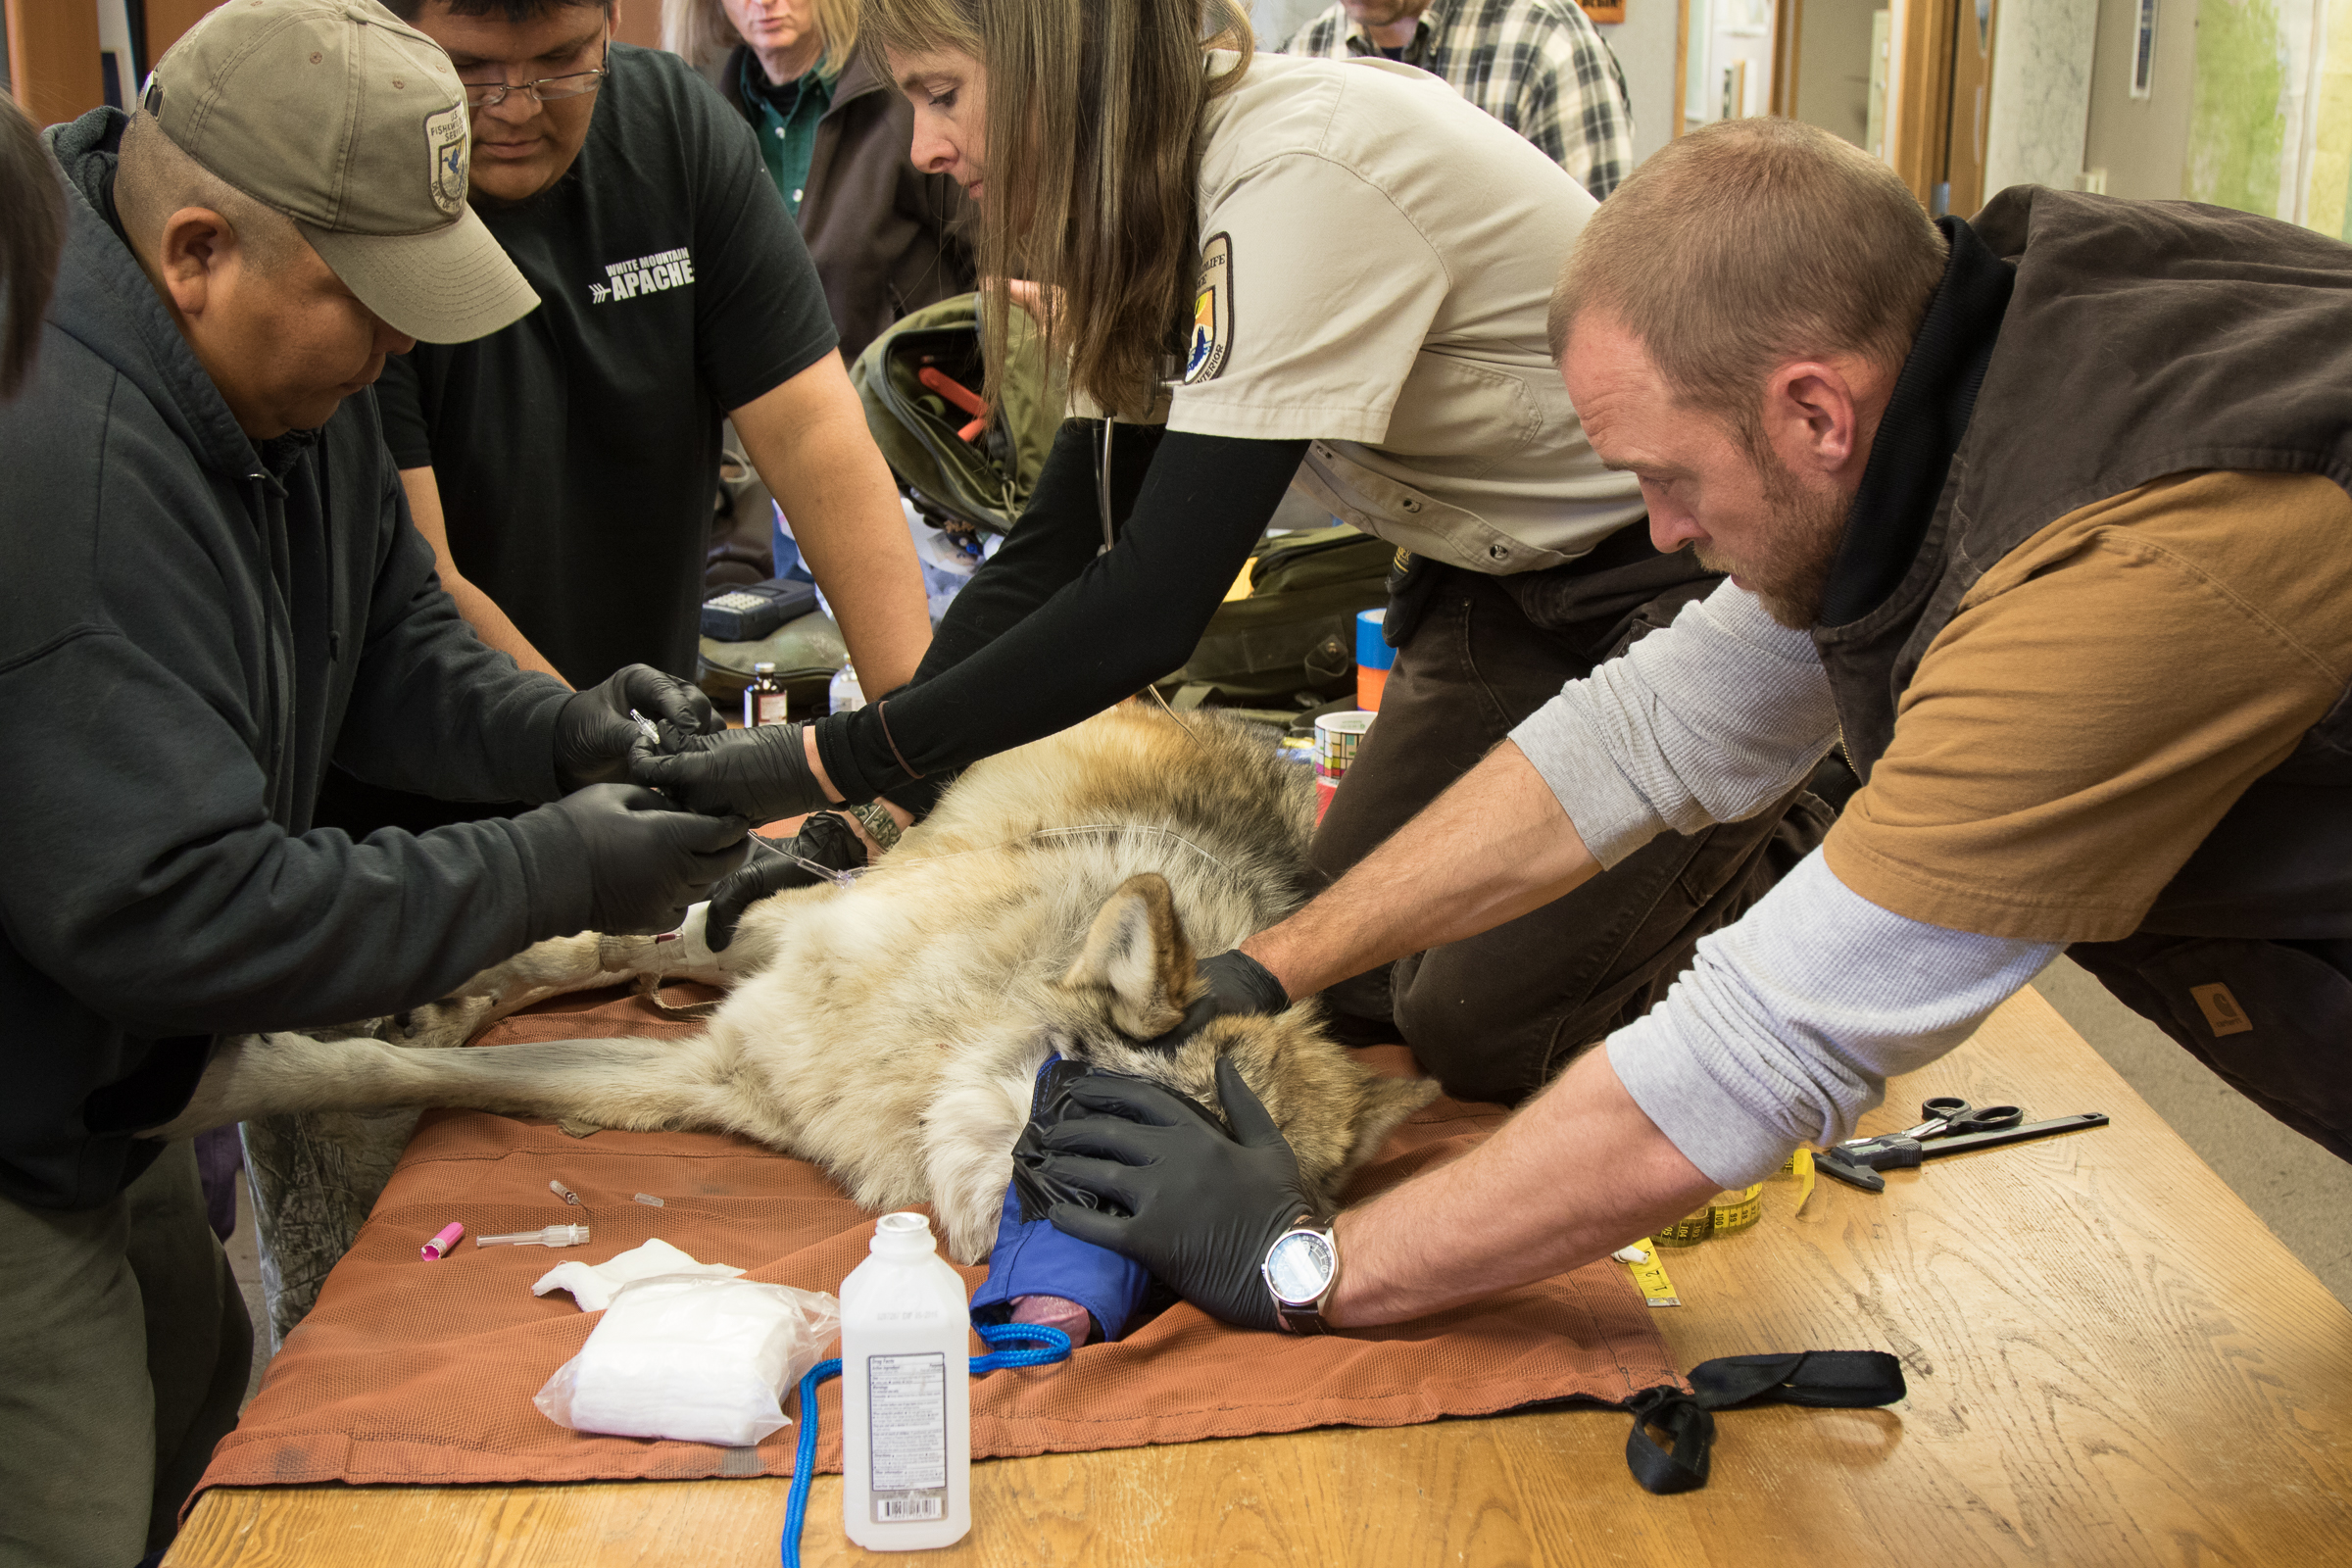 Interagency field team members from the White Mountain Apache Tribe of Arizona, Arizona Game and Fish, and the U.S. Fish and Wildlife Service work together to administer vaccinations, take blood samples, and refit wolf #M1296 with a GPS collar. Photograph by Christina Selby